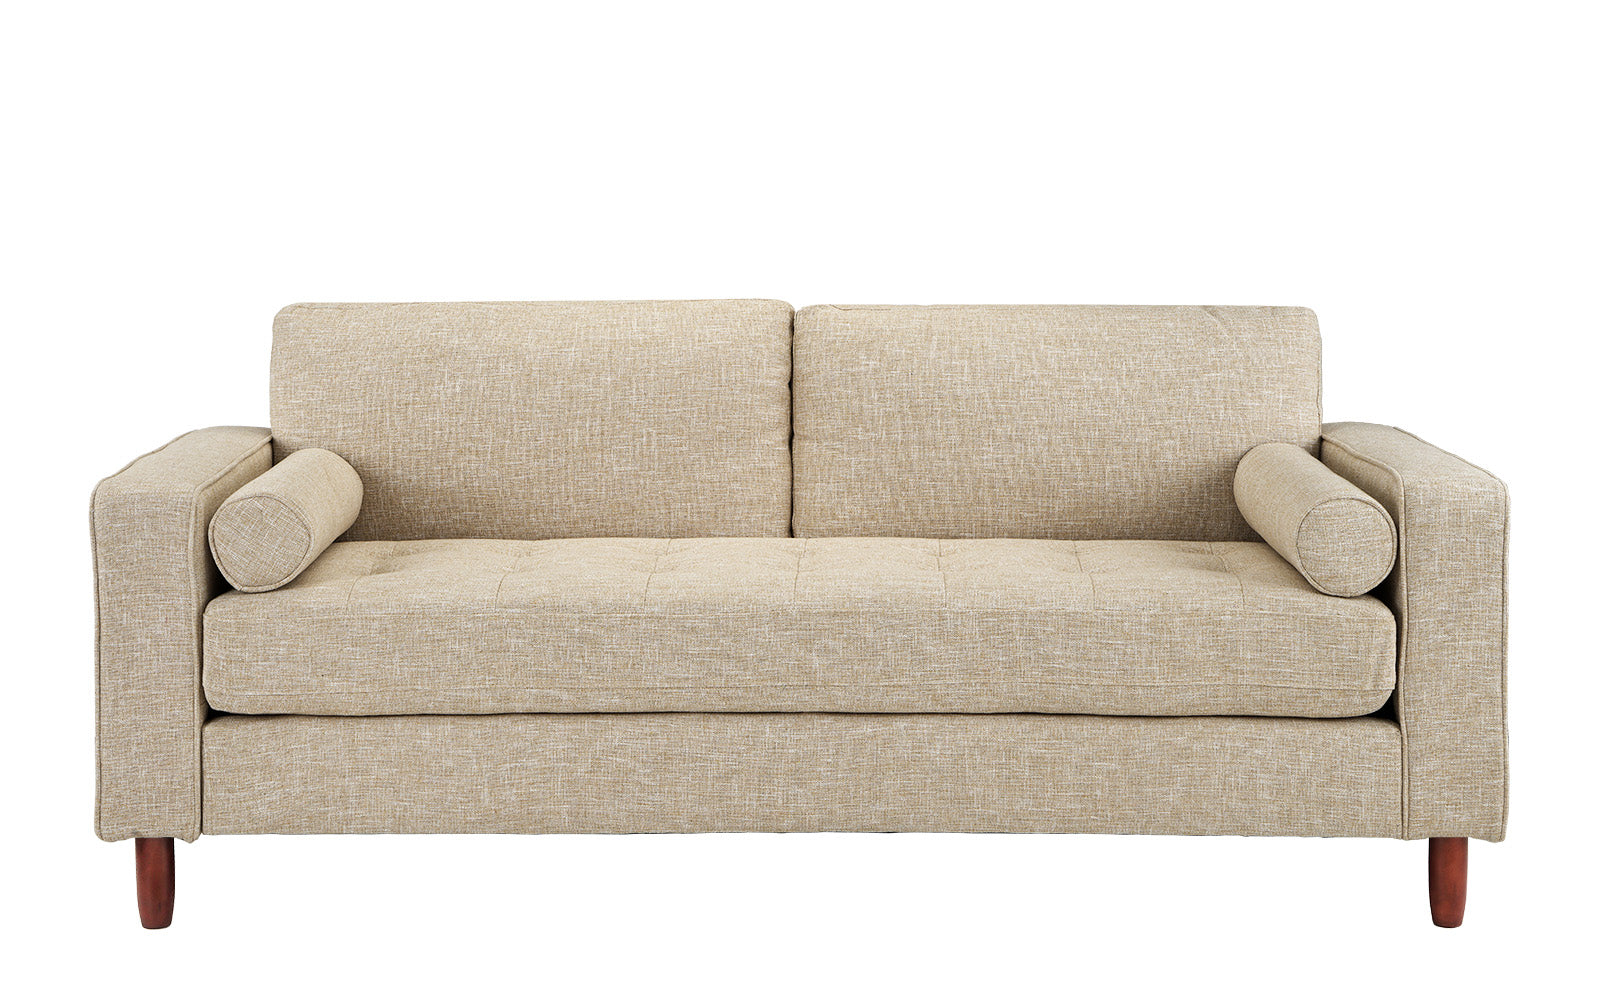 Ethan Mid Century Modern Fabric Sofa with Bolster Pillows